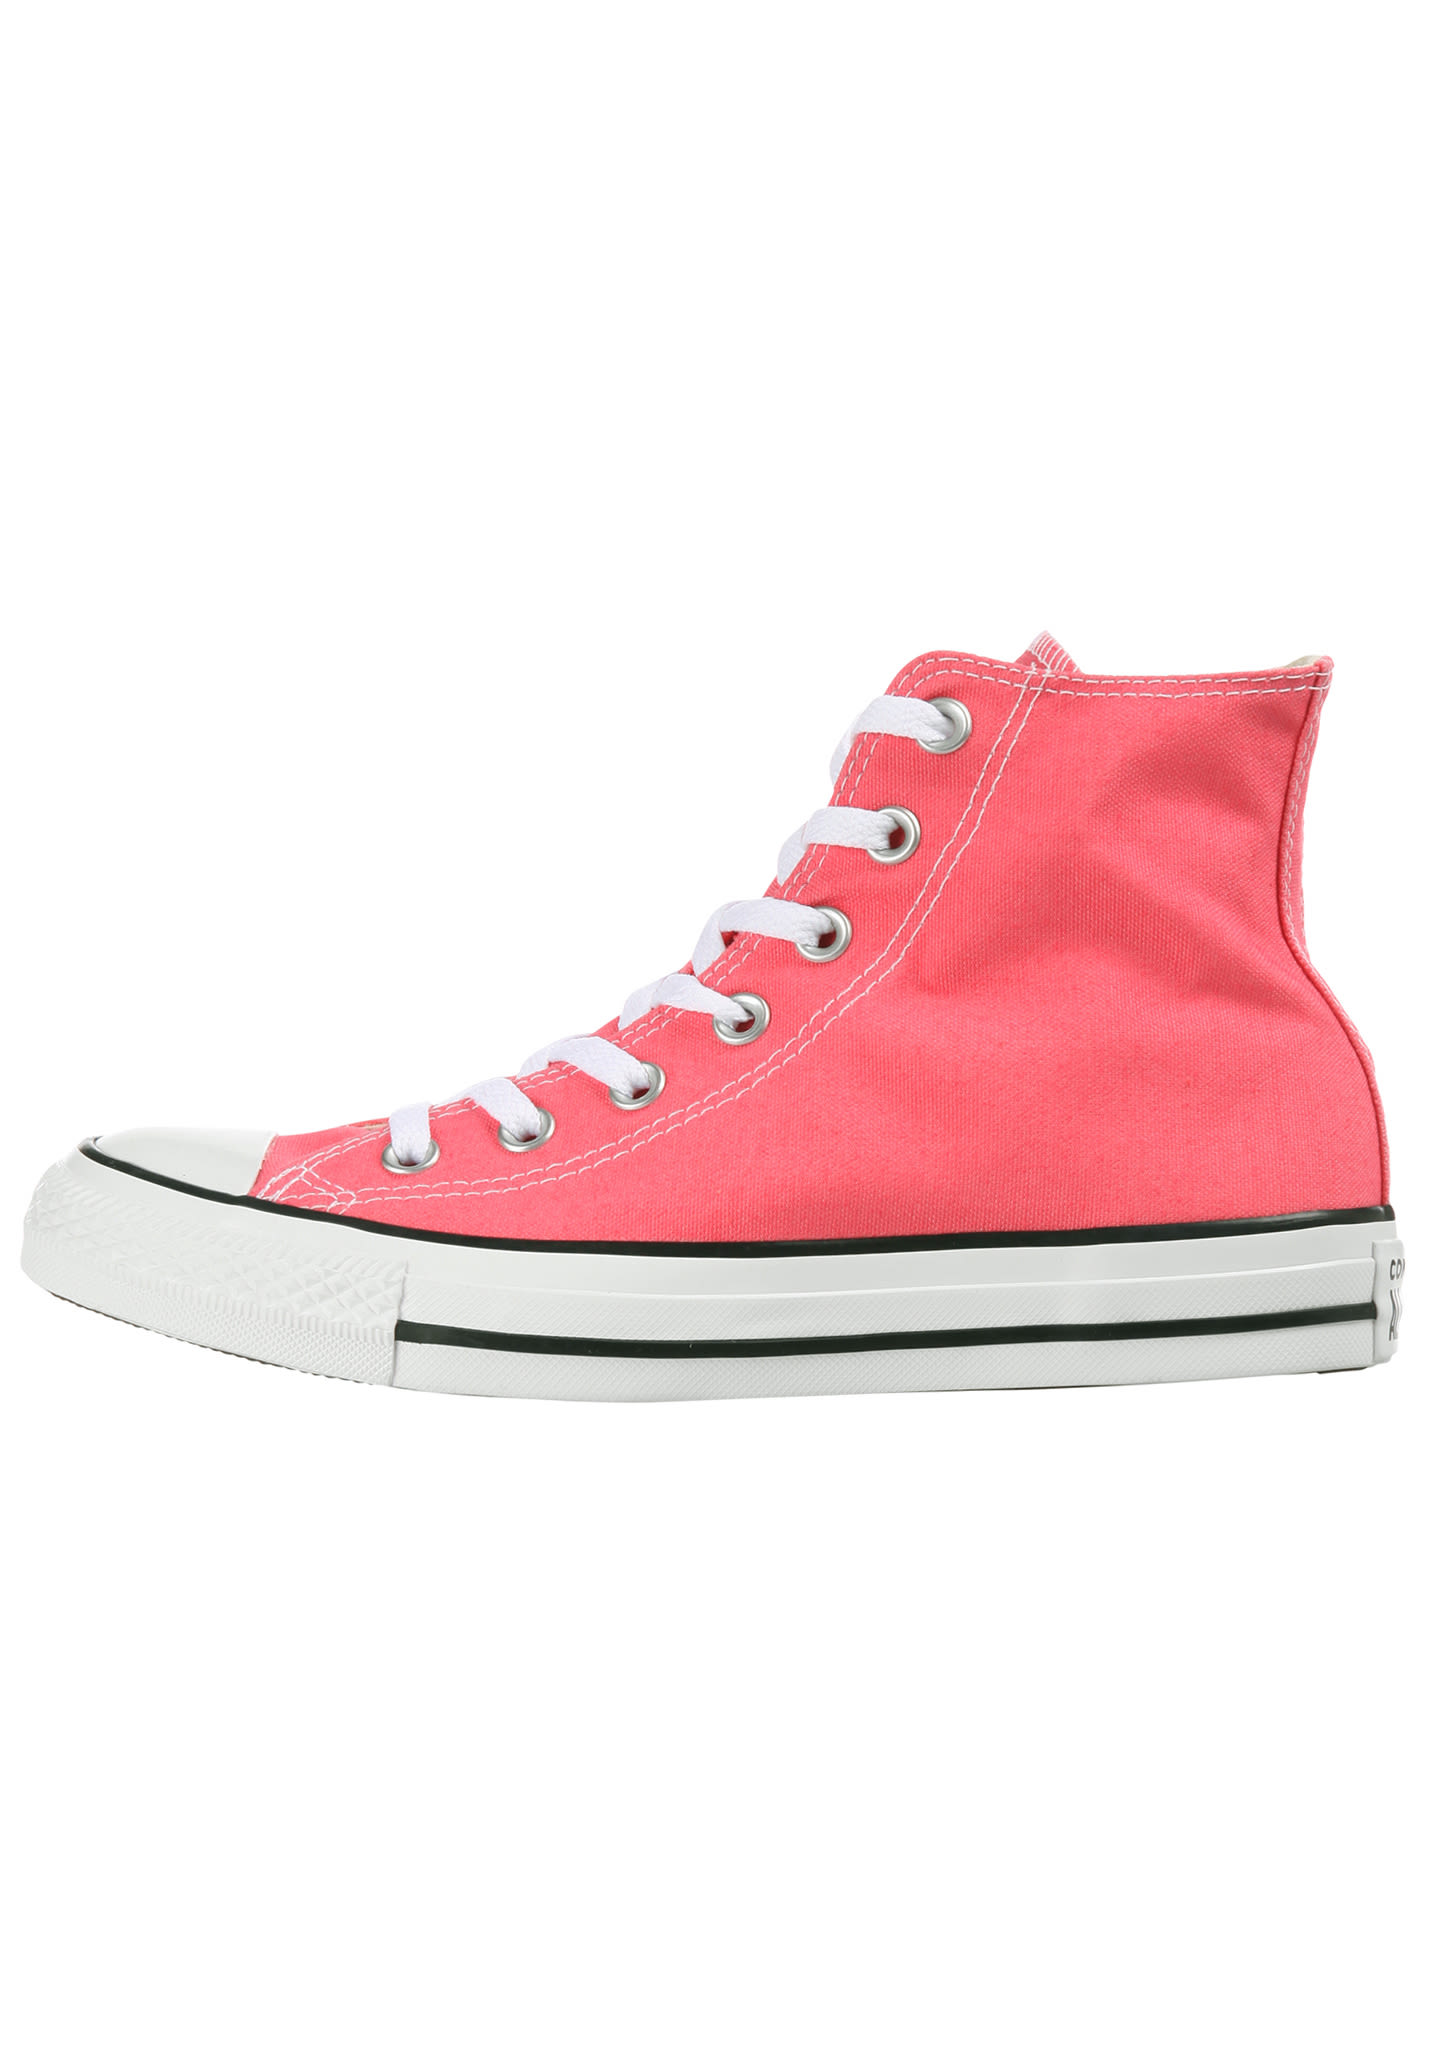 6b36e731cb2ada Converse Chuck Taylor All Star Hi Punch - Sneakers for Women - Pink -  Planet Sports